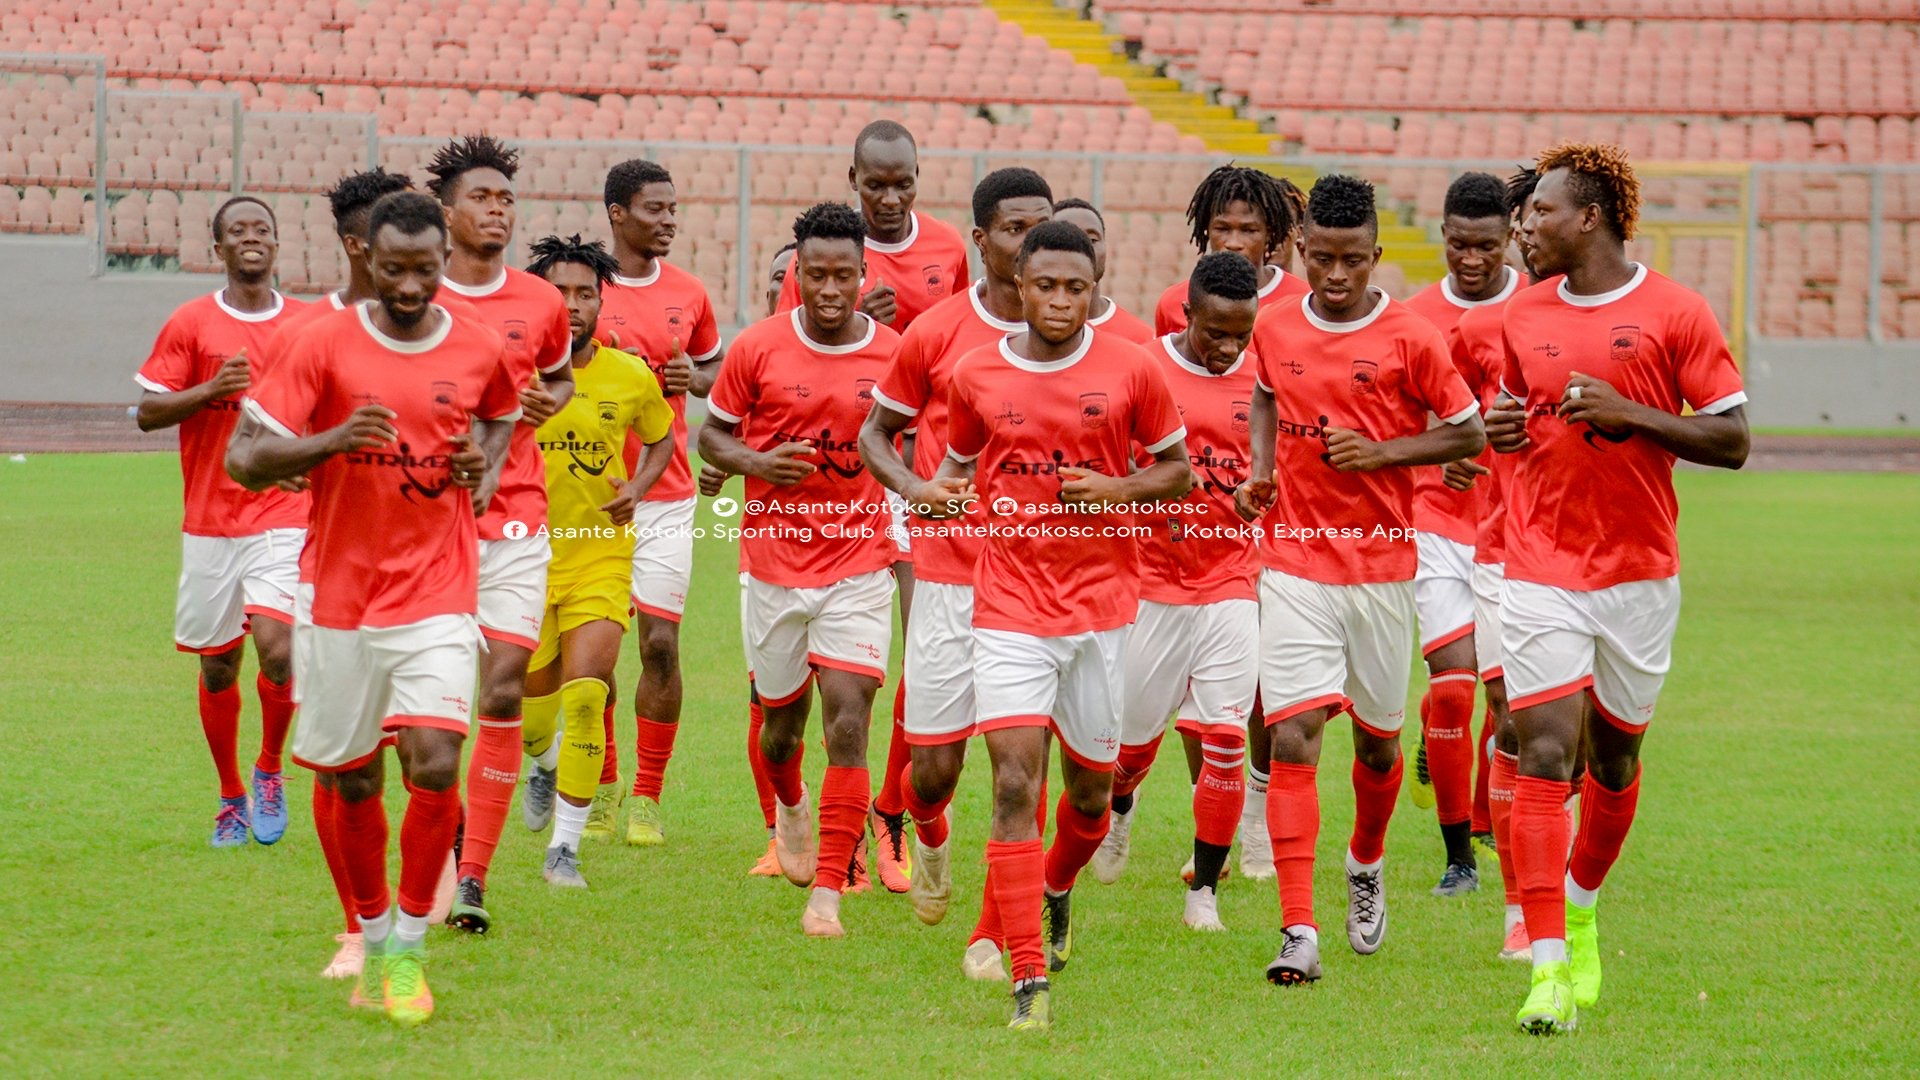 Maxwell Konadu's first game ends 3-3 draw against Division One side Asokwa Deportivo as George Abege and Yacouba on target for Kotoko